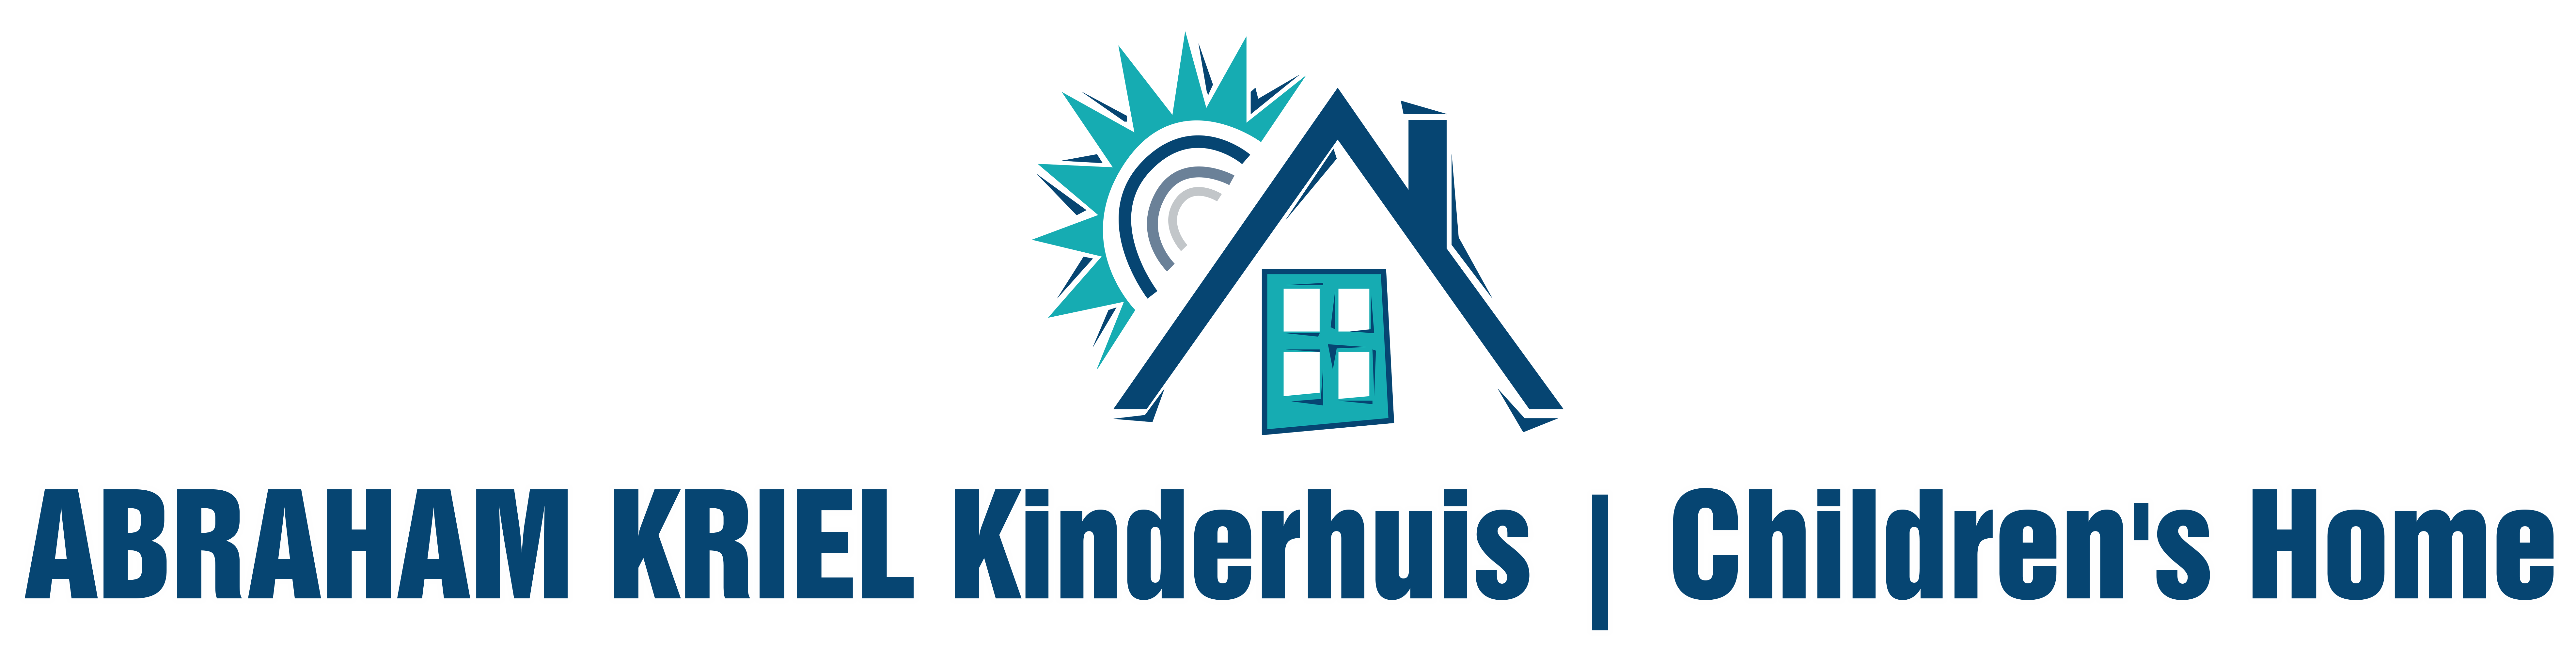 Abraham Kriel Kinderhuis | Children's Home